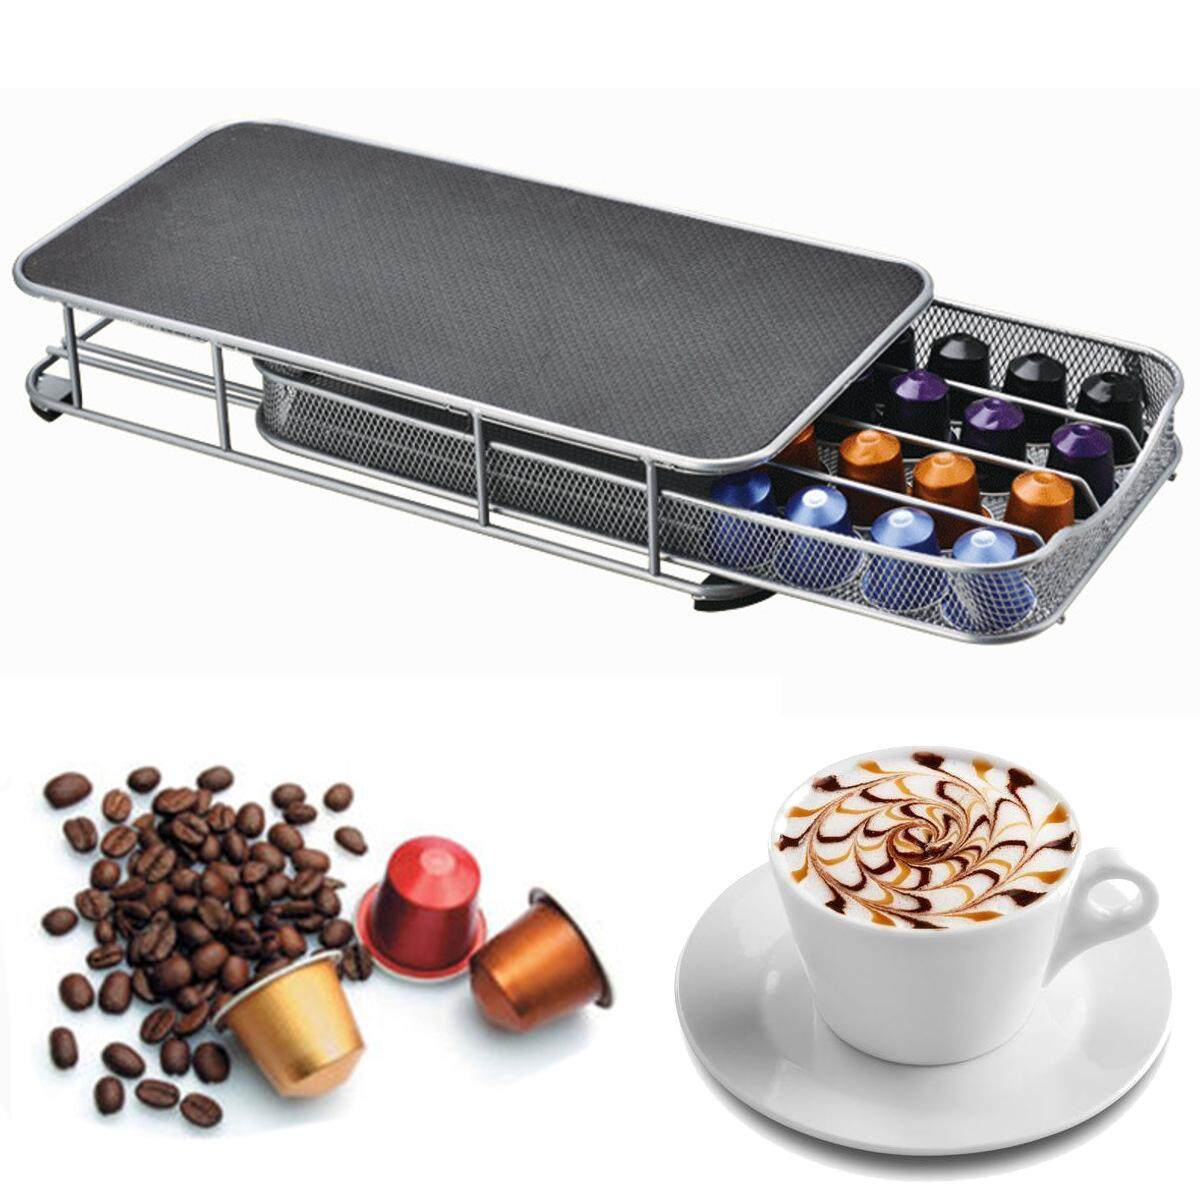 New Stainless Steel Anti Slip Stand 40 Nespresso Coffee Capsule Pod Holder Rack Intl Lowest Price